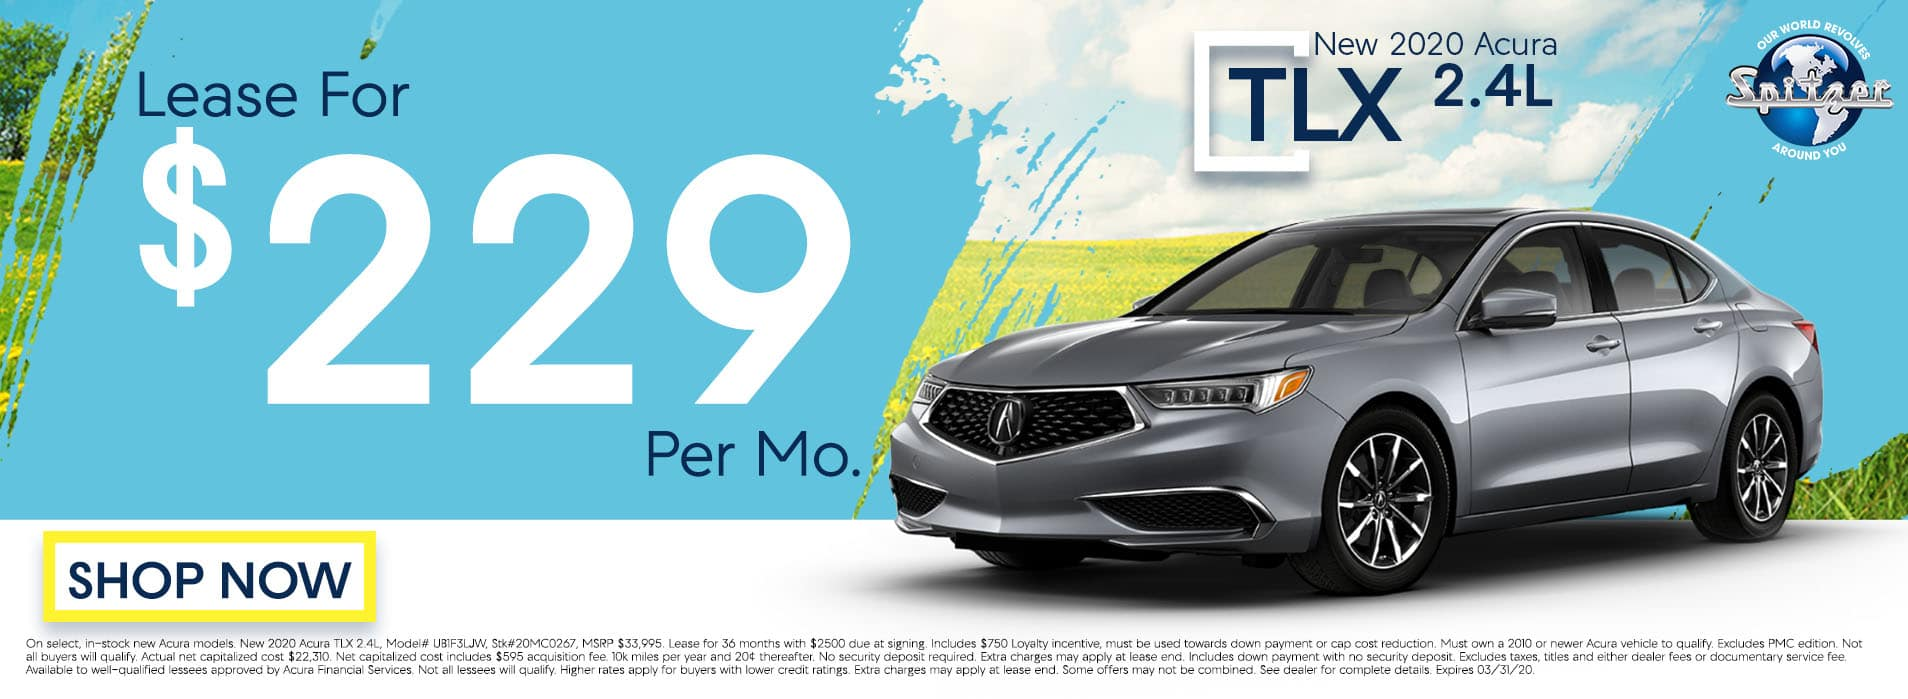 TLX | Lease for $229 per mo